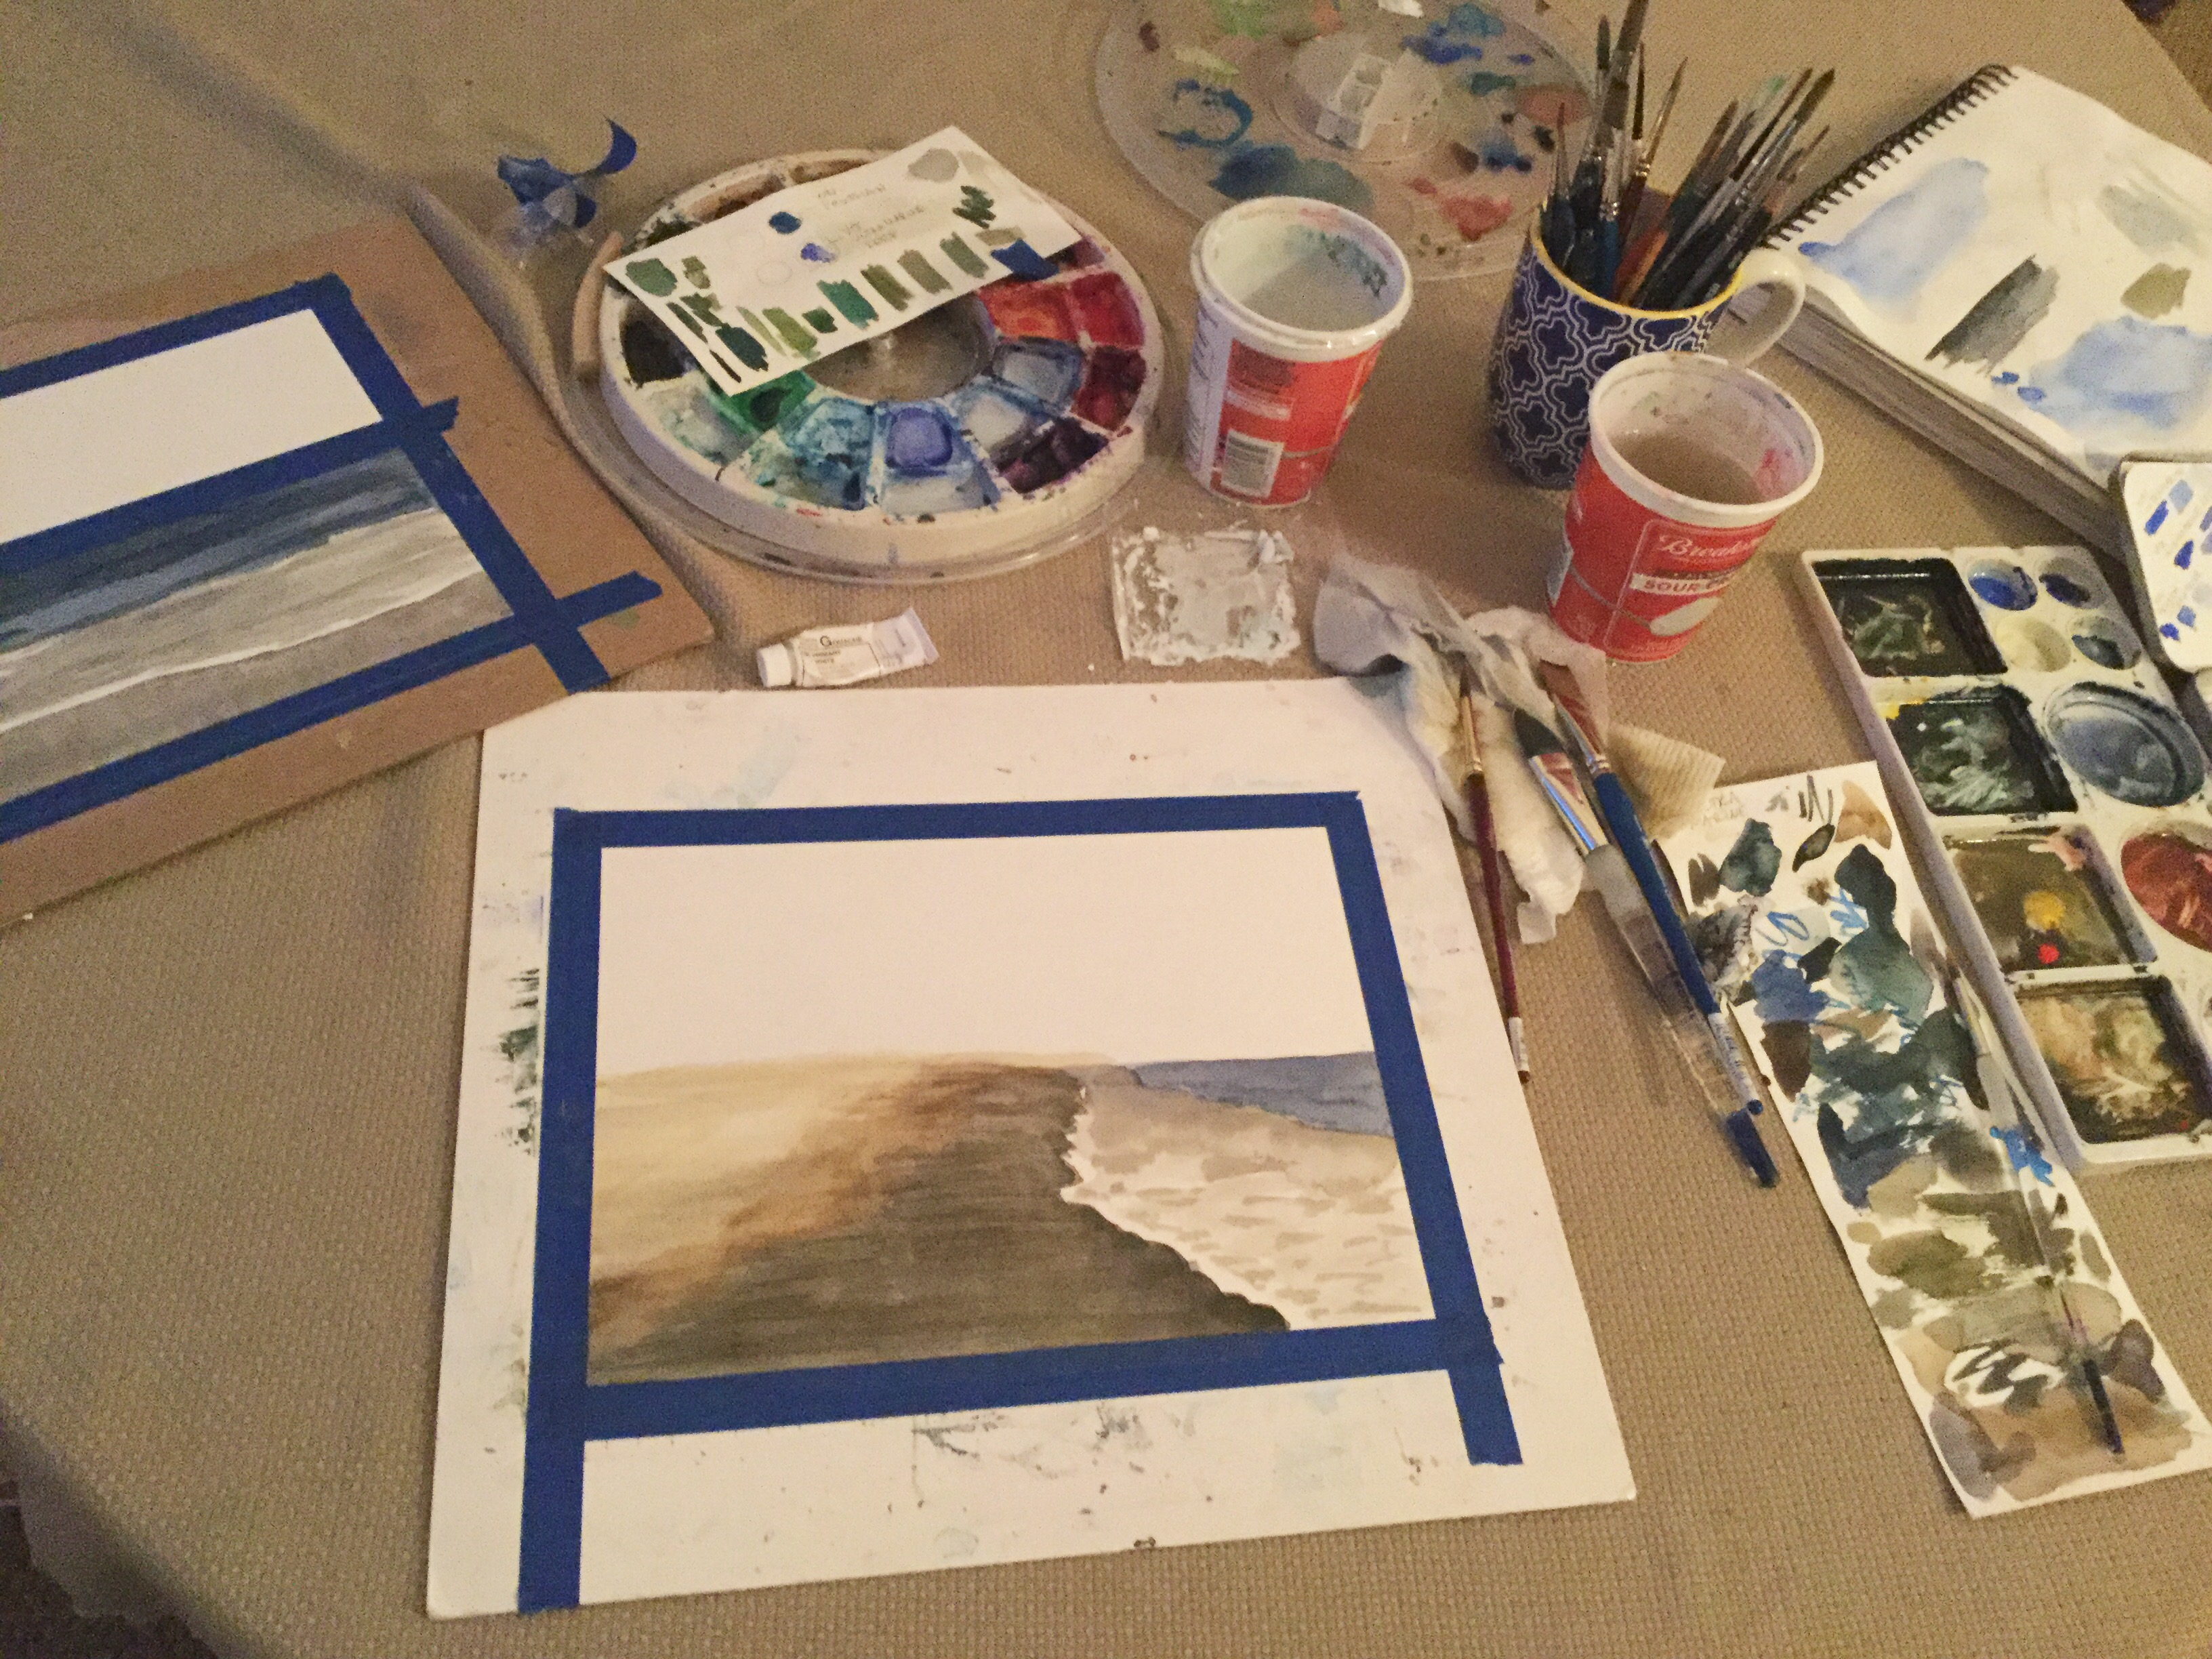 Committed to painting   Artist's setup